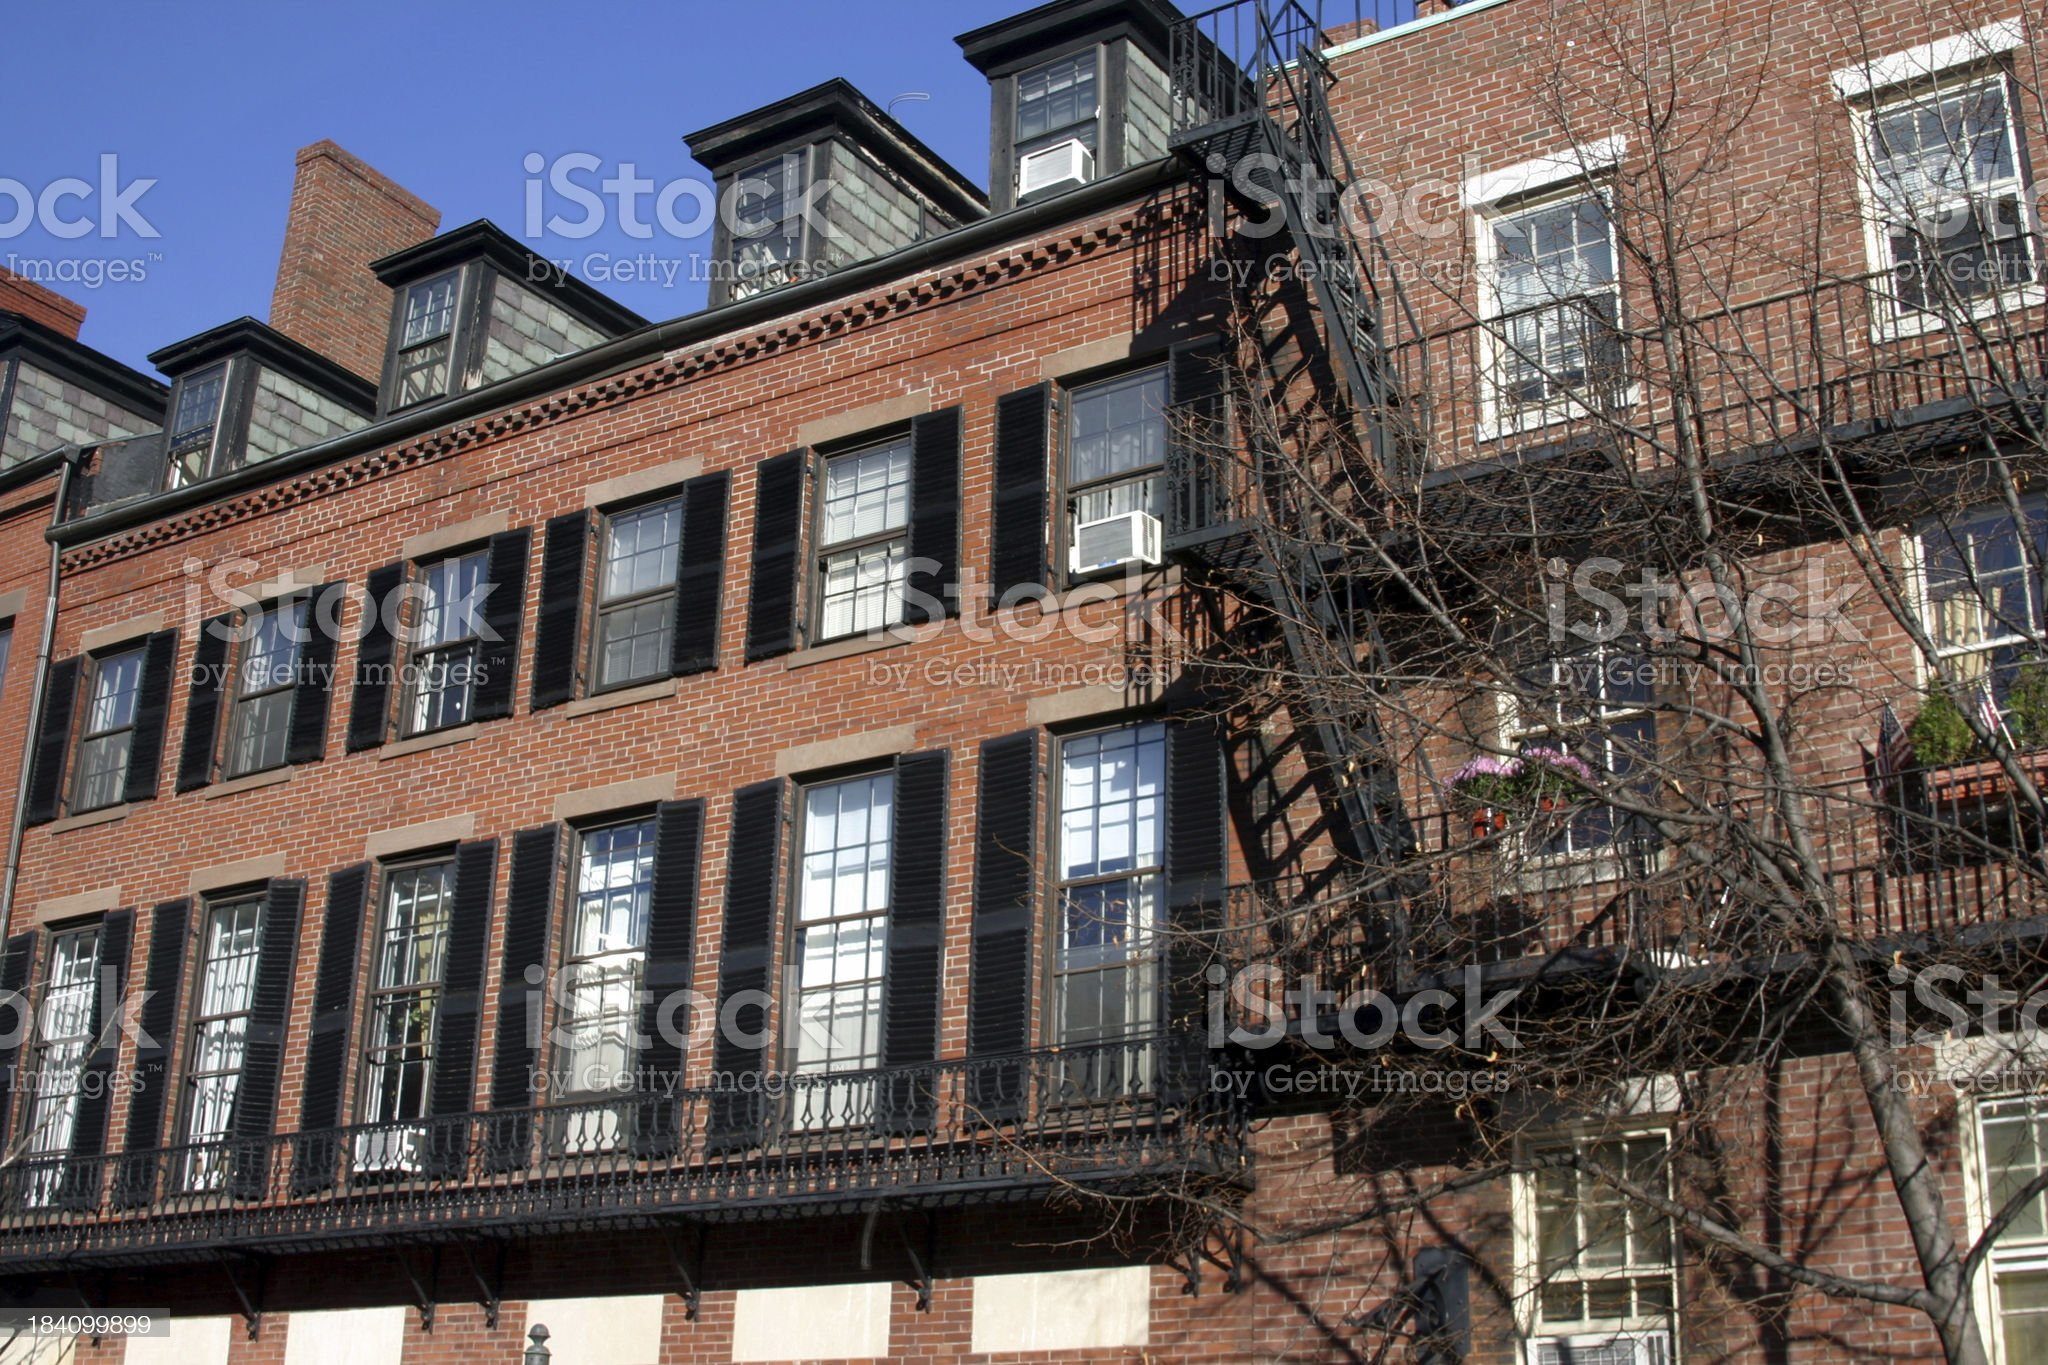 Beacon Hill Architecture royalty-free stock photo